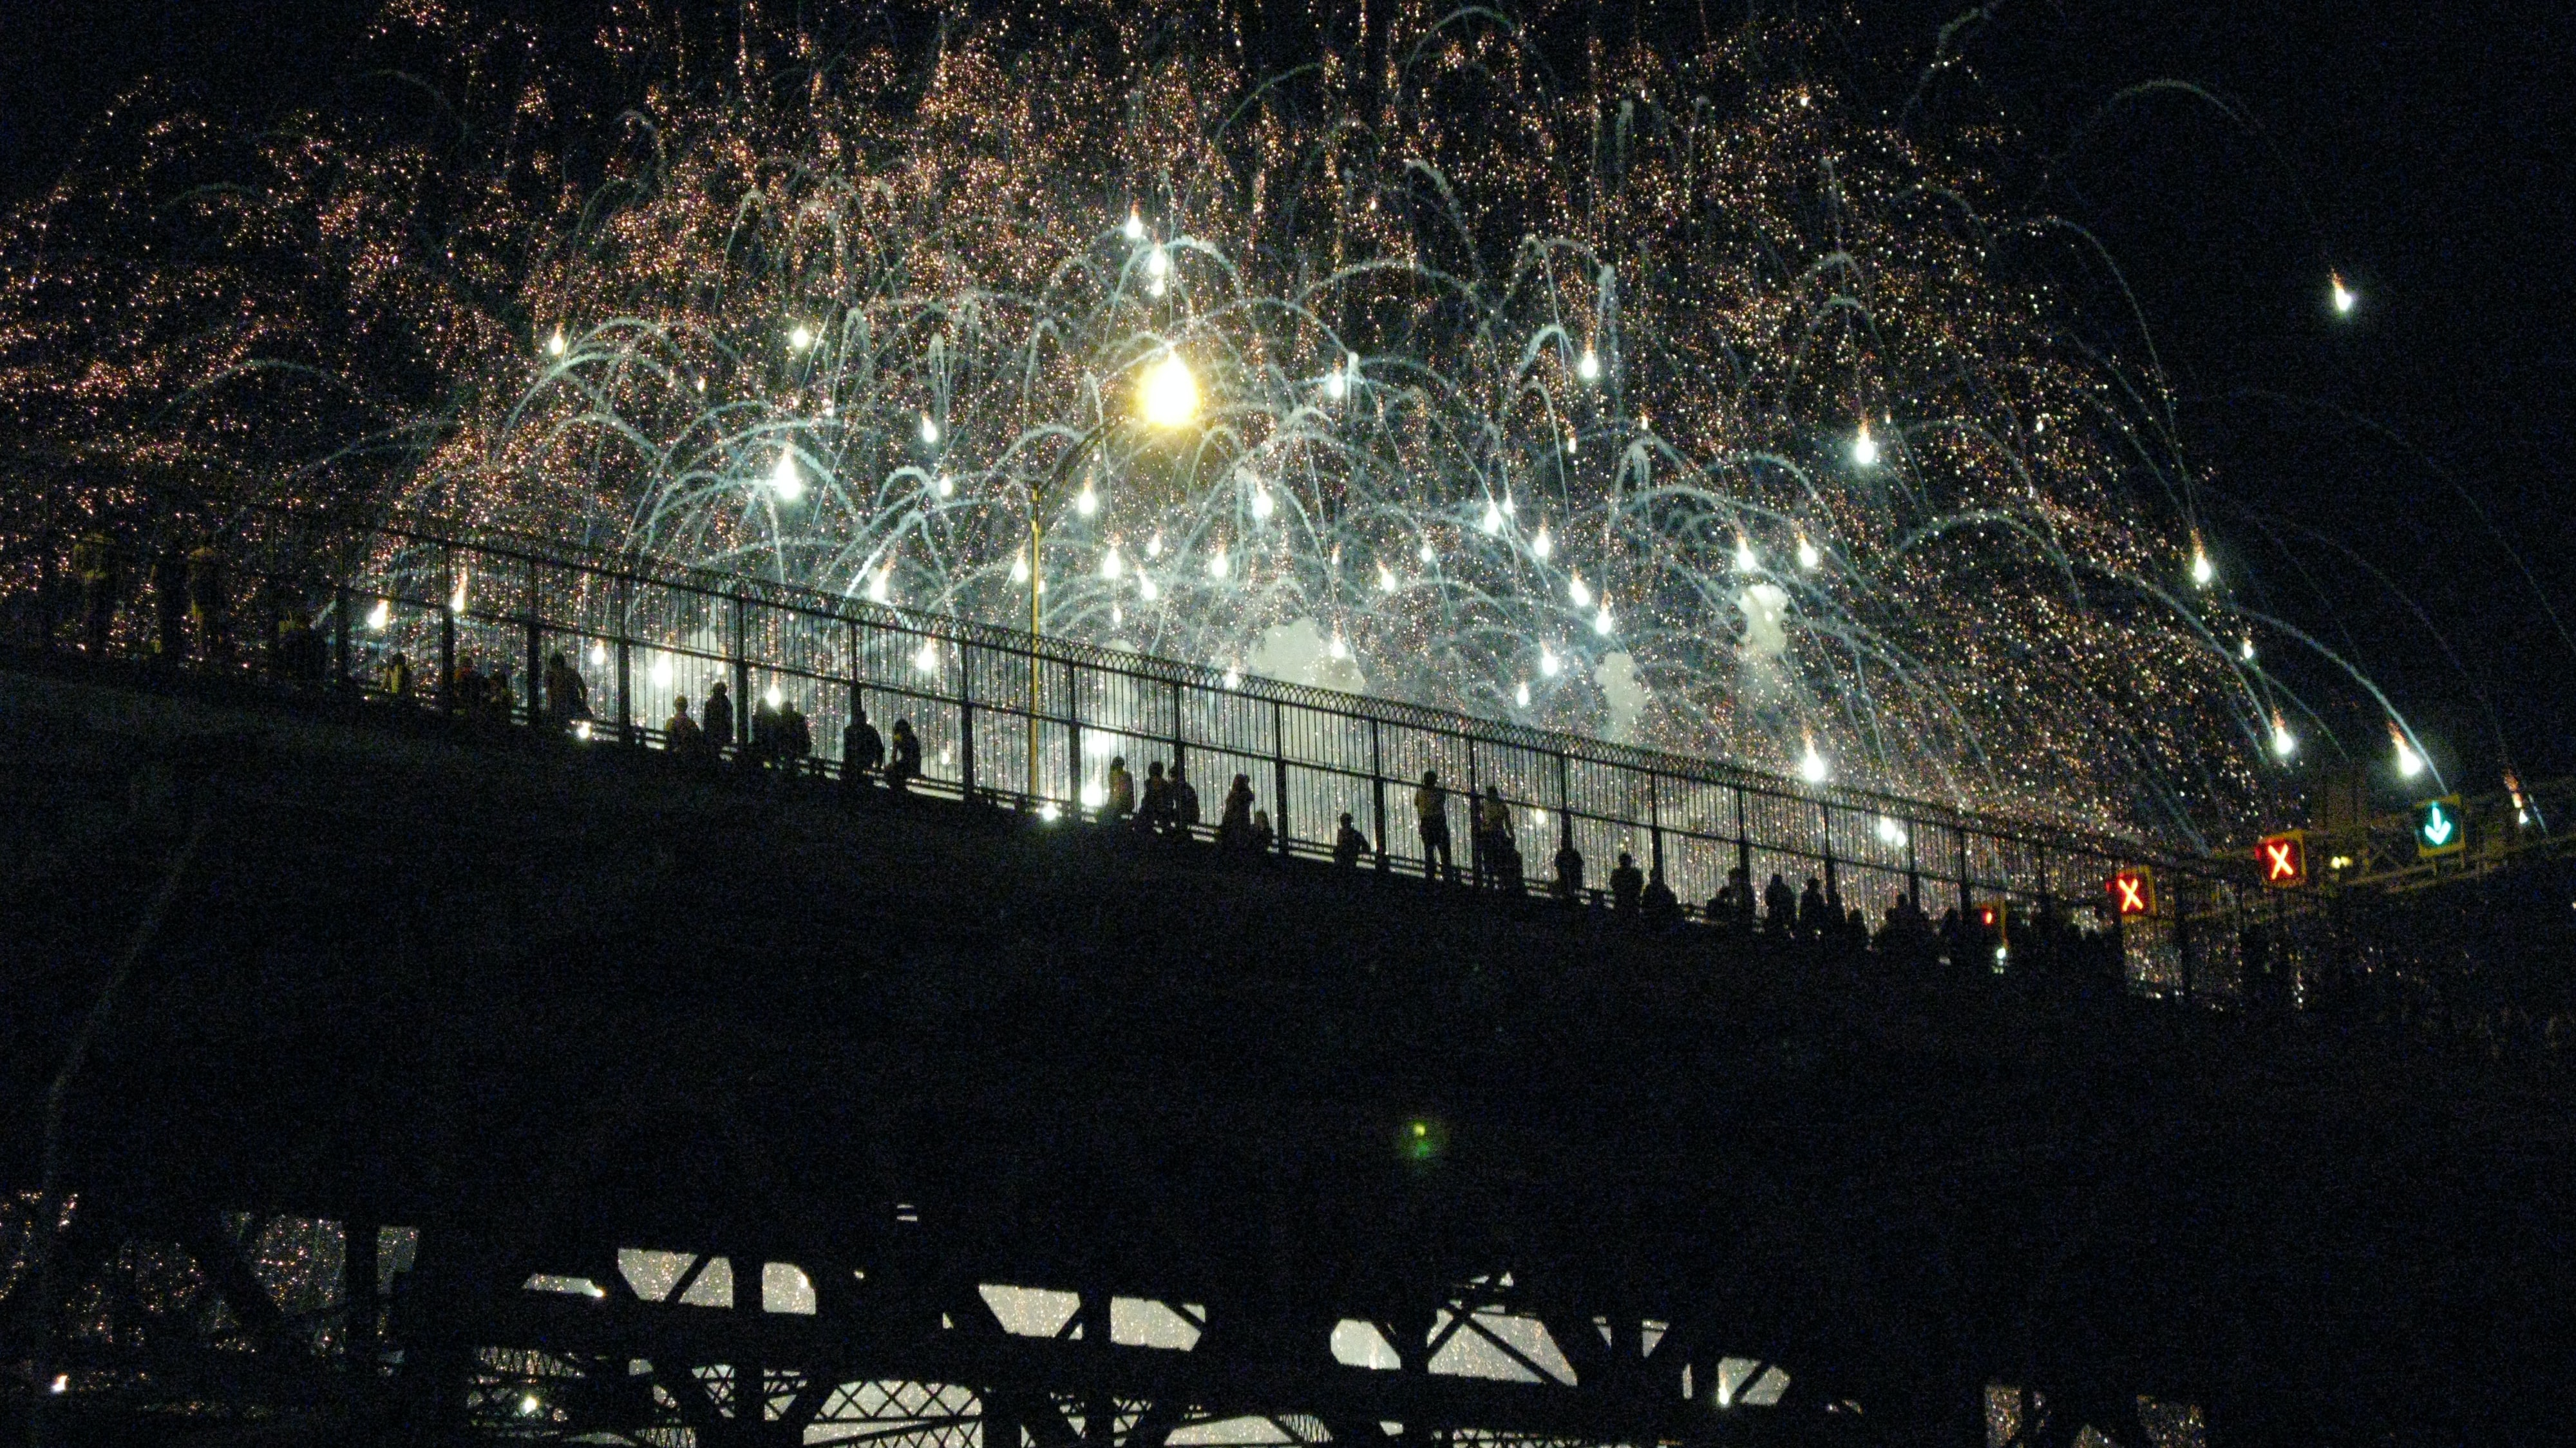 People on a bridge at night in Montreal celebrating with fireworks